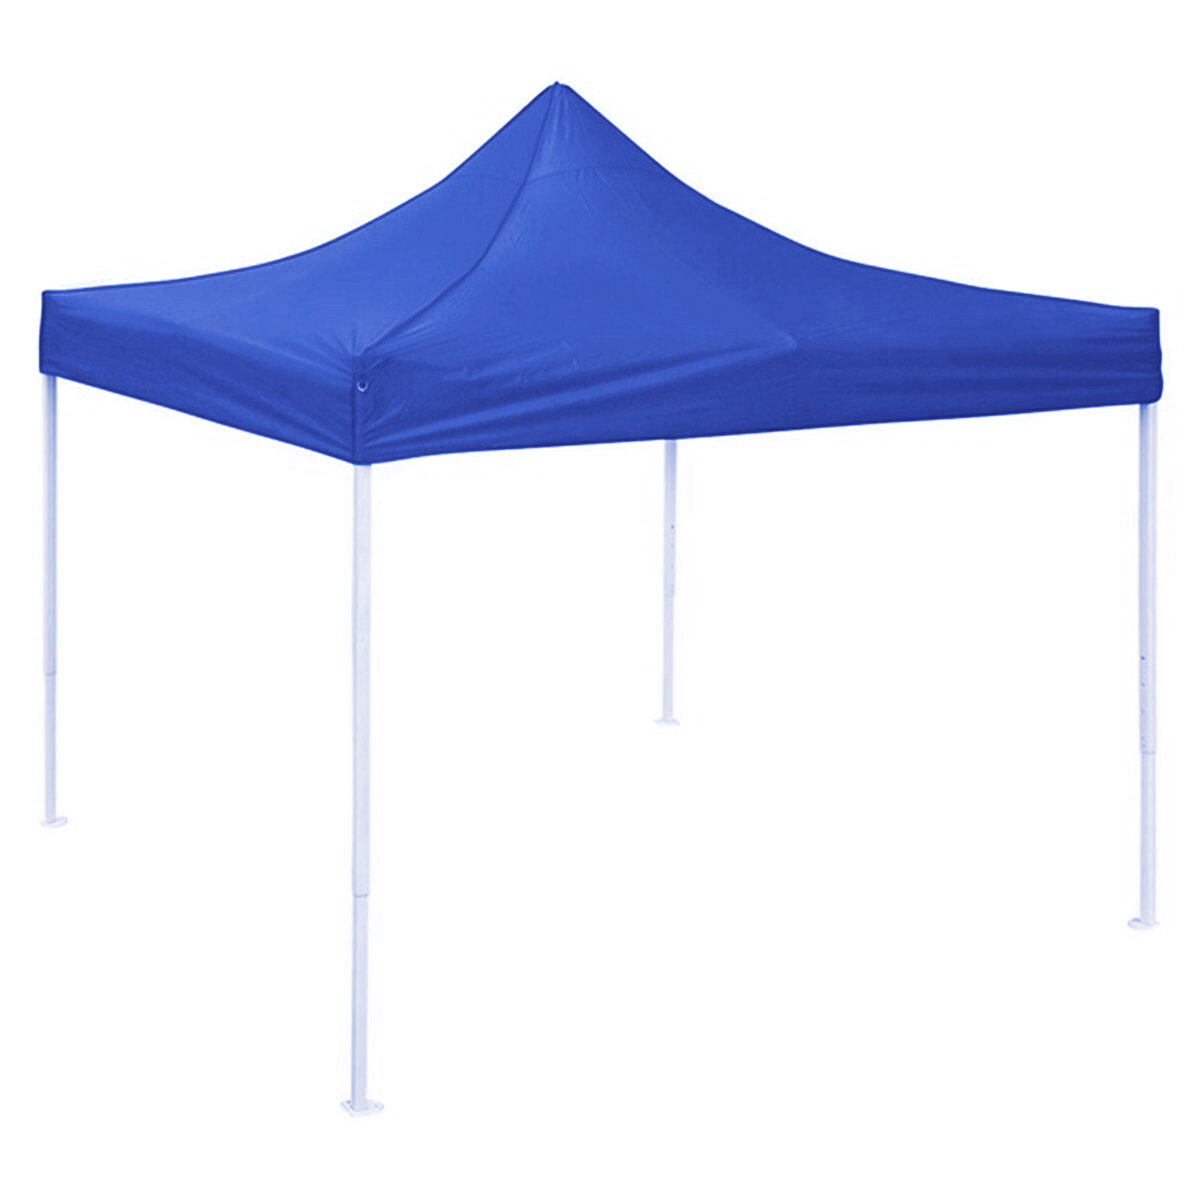 3x4.5m Outdoor Canopy Top Replacement Tent UV Sunshade Gazebo Waterproof Cover